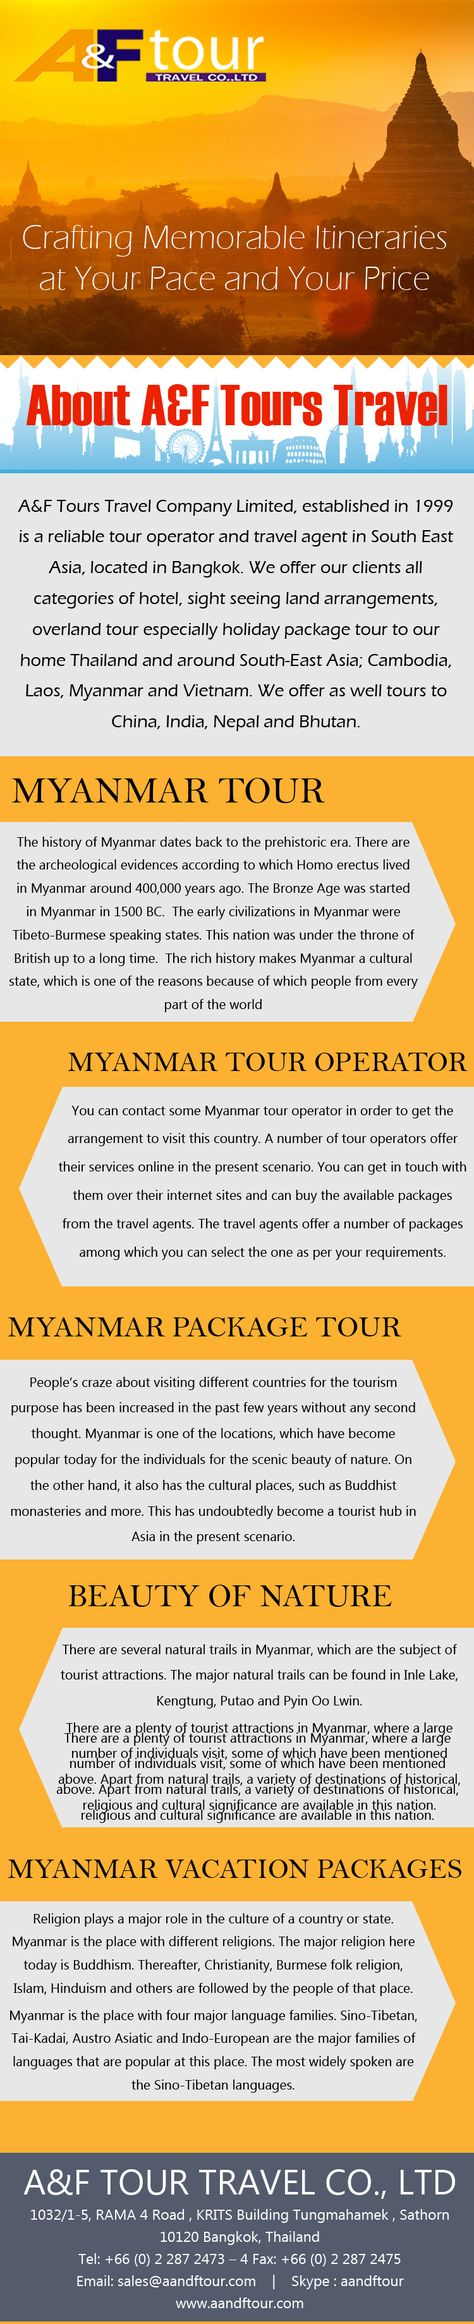 AF Tour Travel Is A Cambodia Tour Operator And Travel Agent - Vacation tour and travel